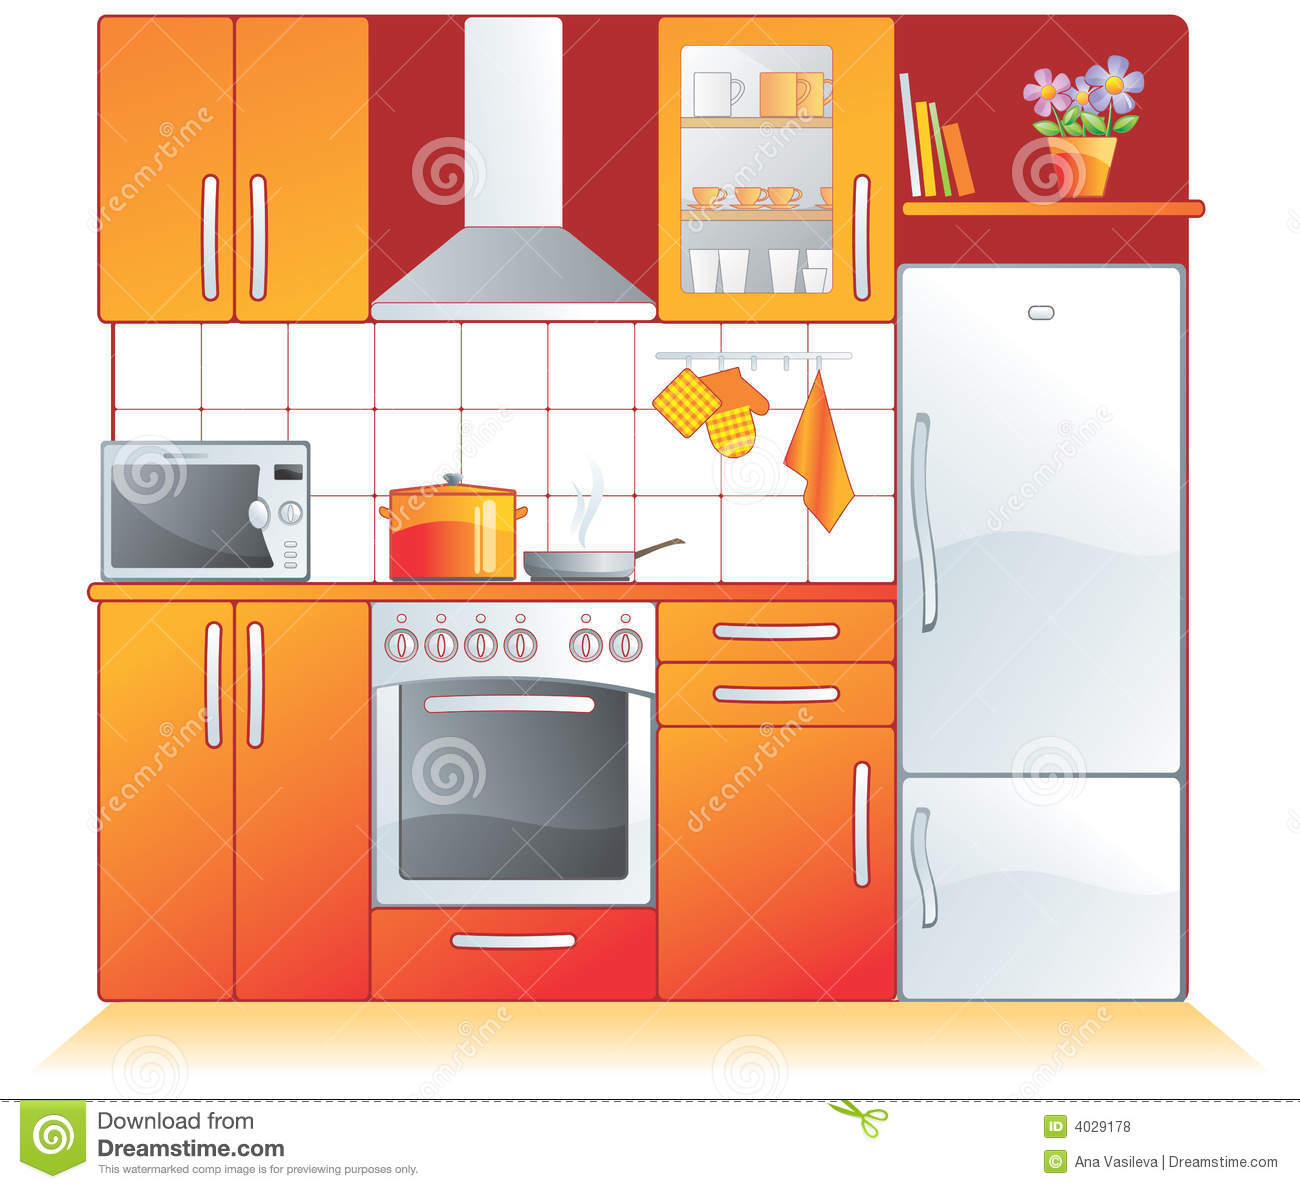 kitchen fittings, appliances royalty free stock photos - image